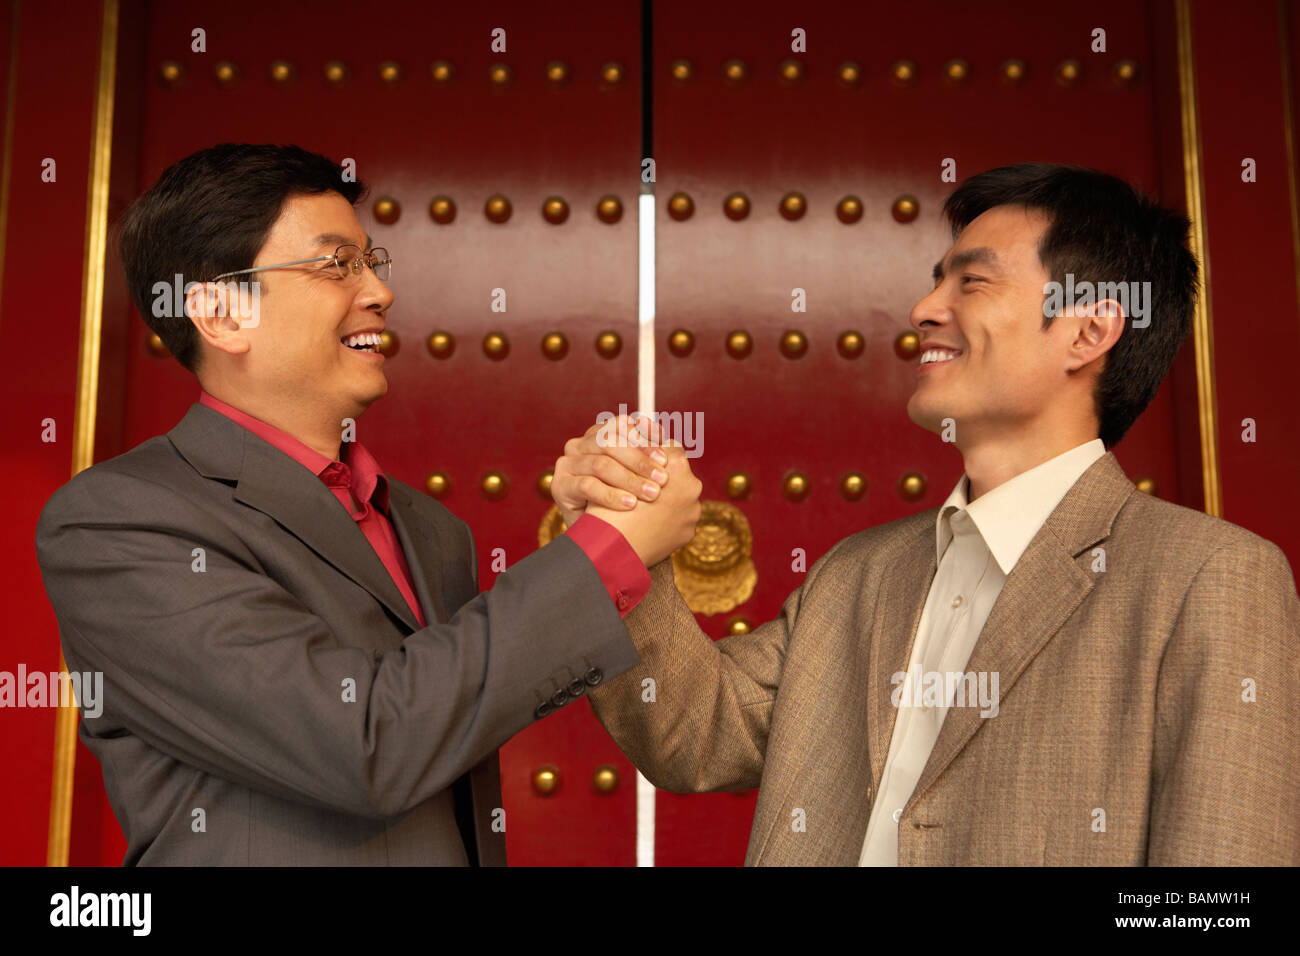 Two Businessmen Shake Hands Outside The Forbidden City - Stock Image